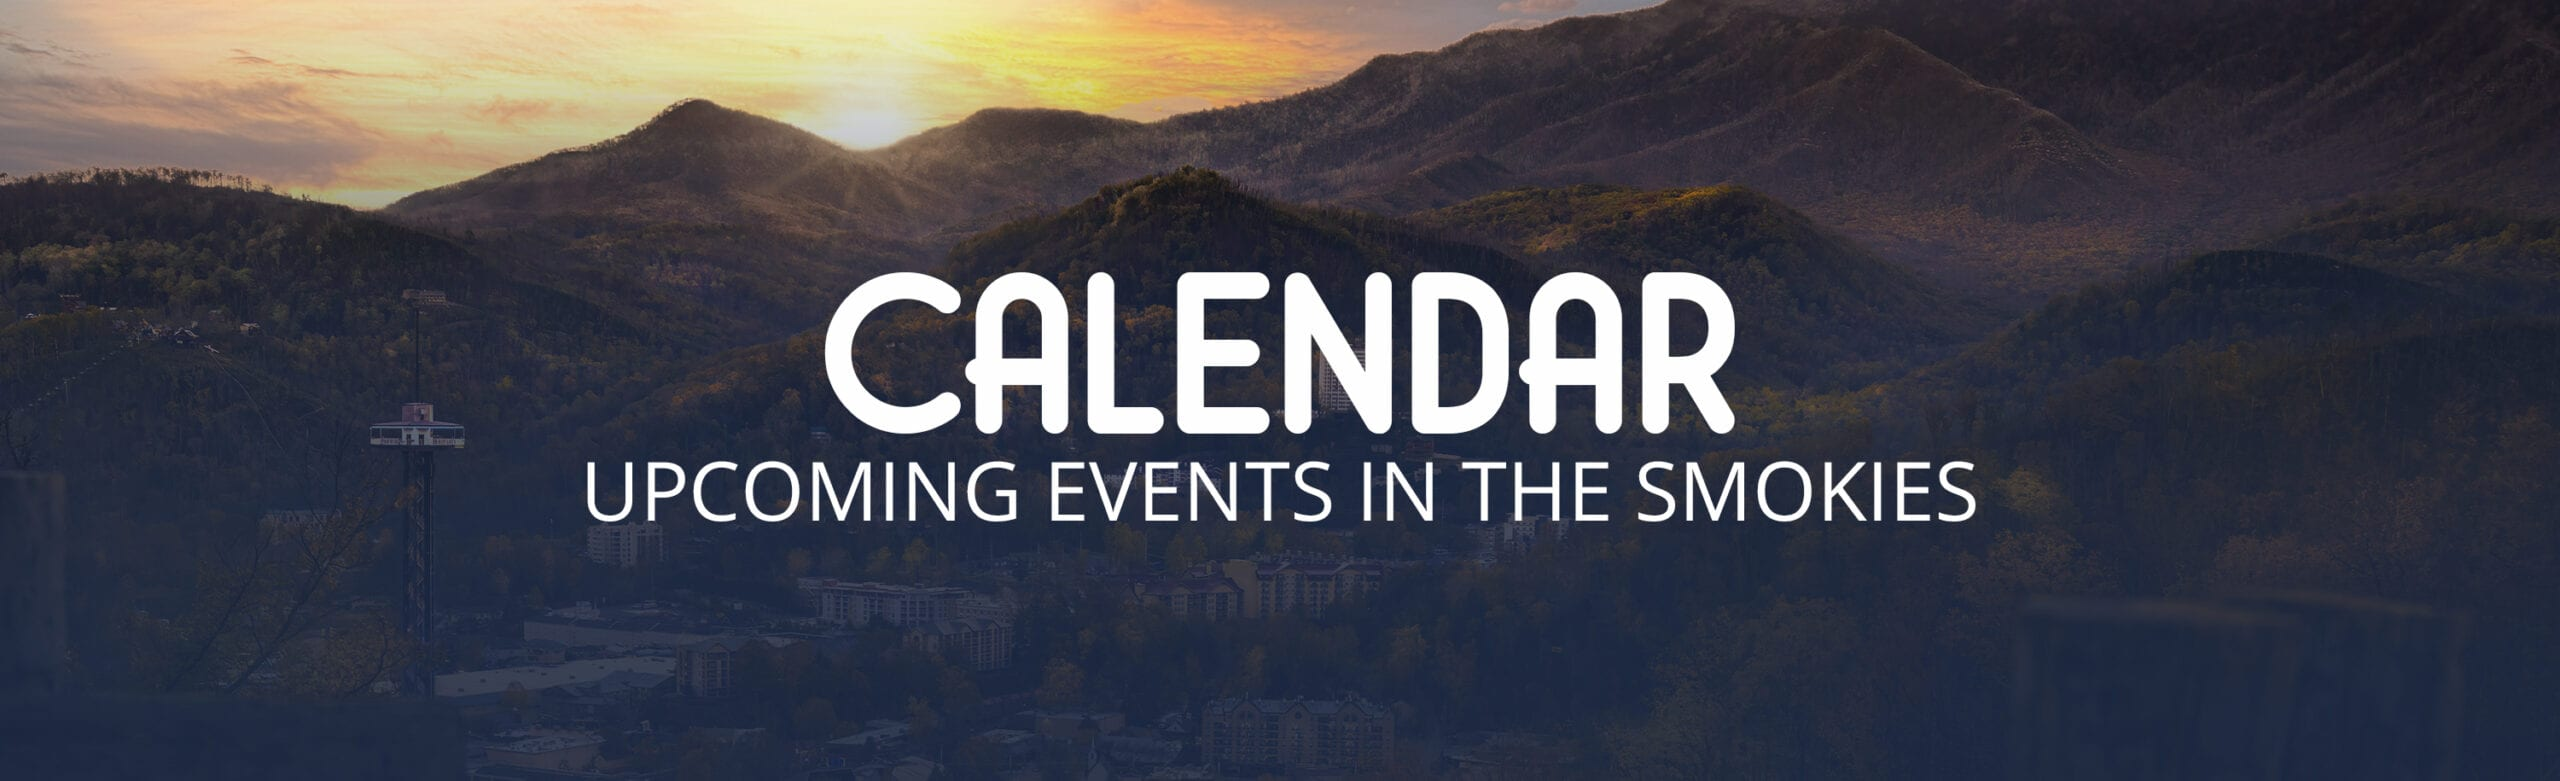 Upcoming events in pigeon forge, gatlinburg and sevierville